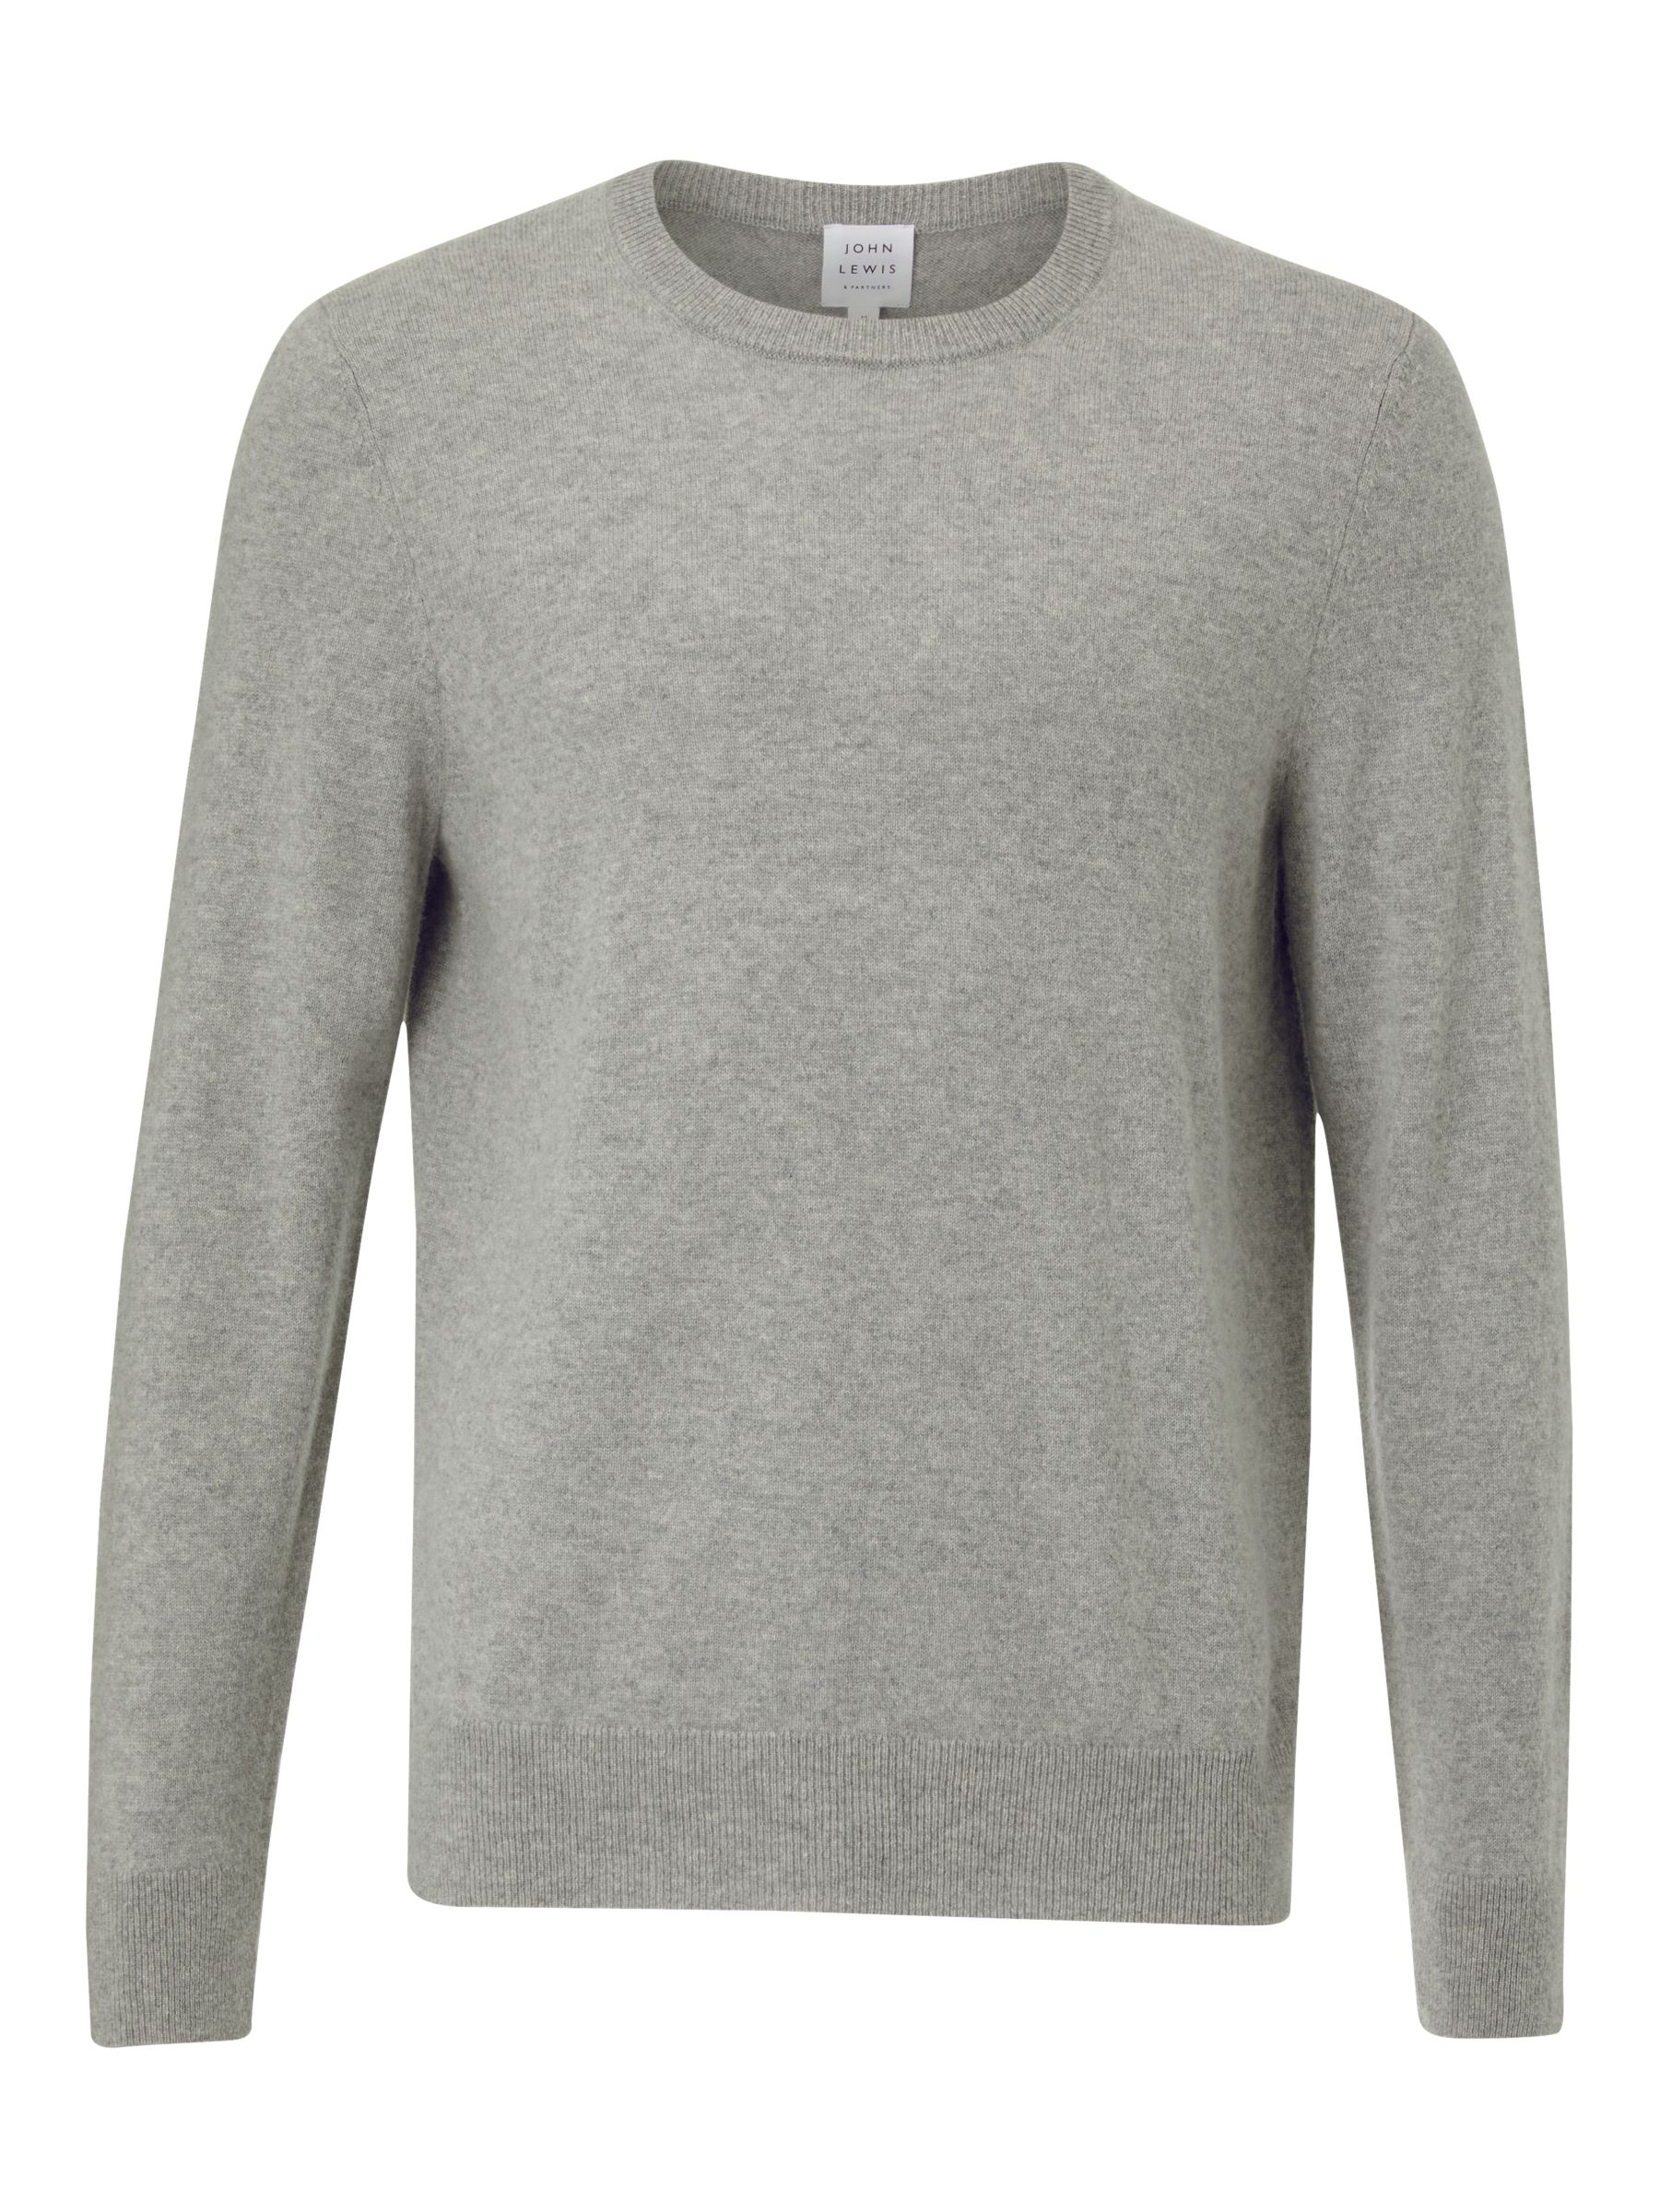 Buy John Lewis & Partners Cashmere Crew Neck Jumper, Grey Melange, S Online at johnlewis.com